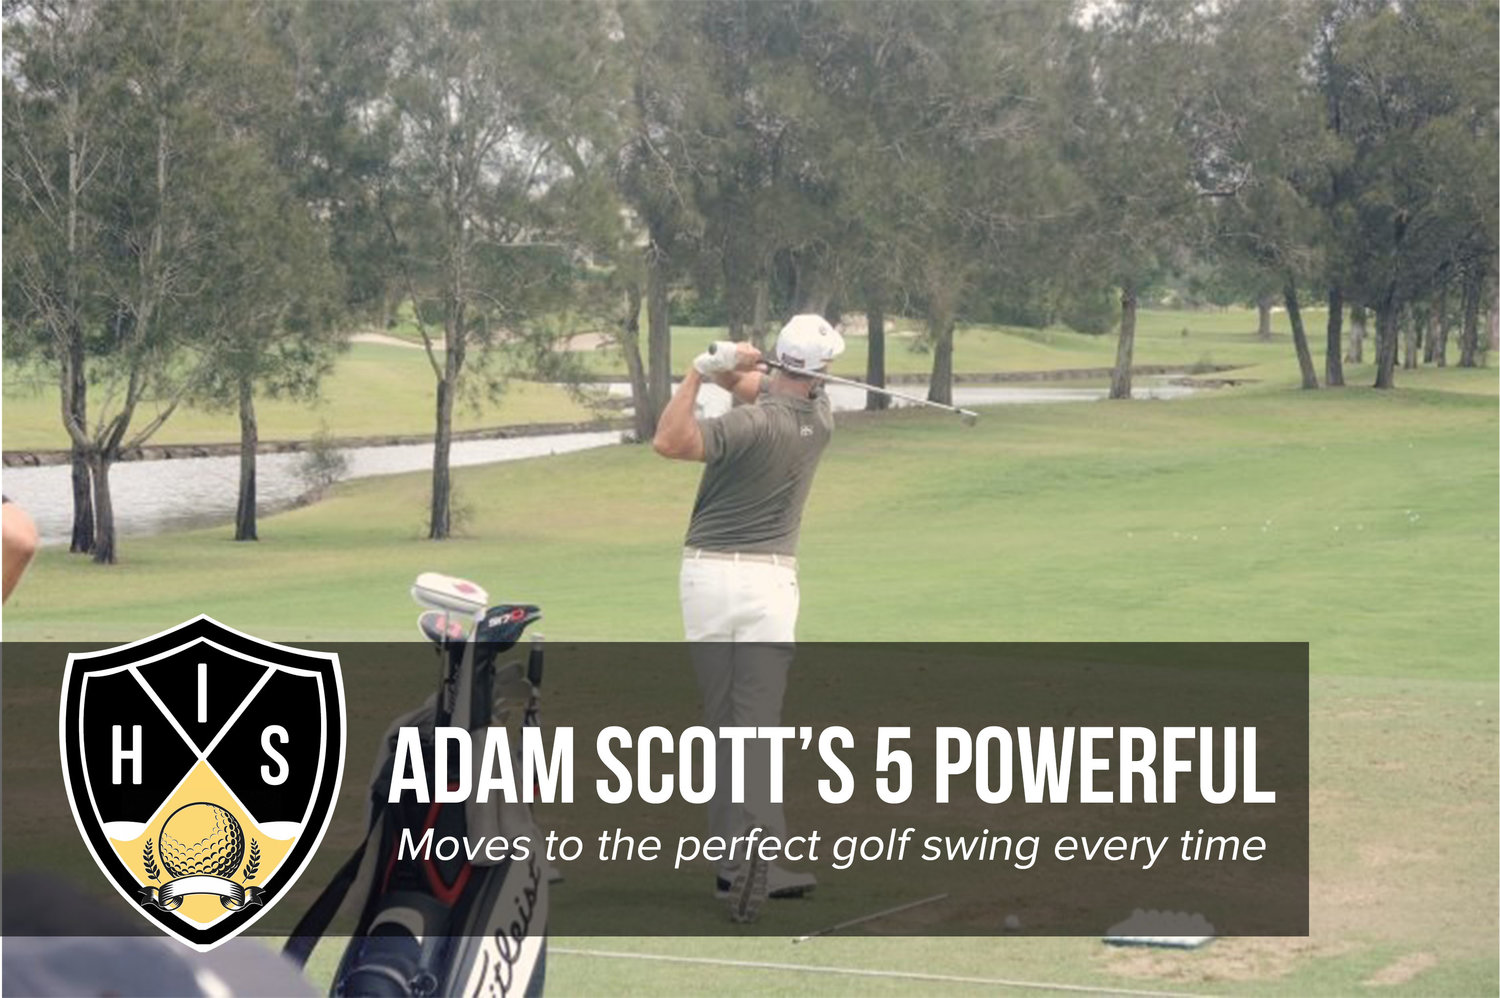 Adam Scott S 5 Powerful Moves To The Perfect Golf Swing